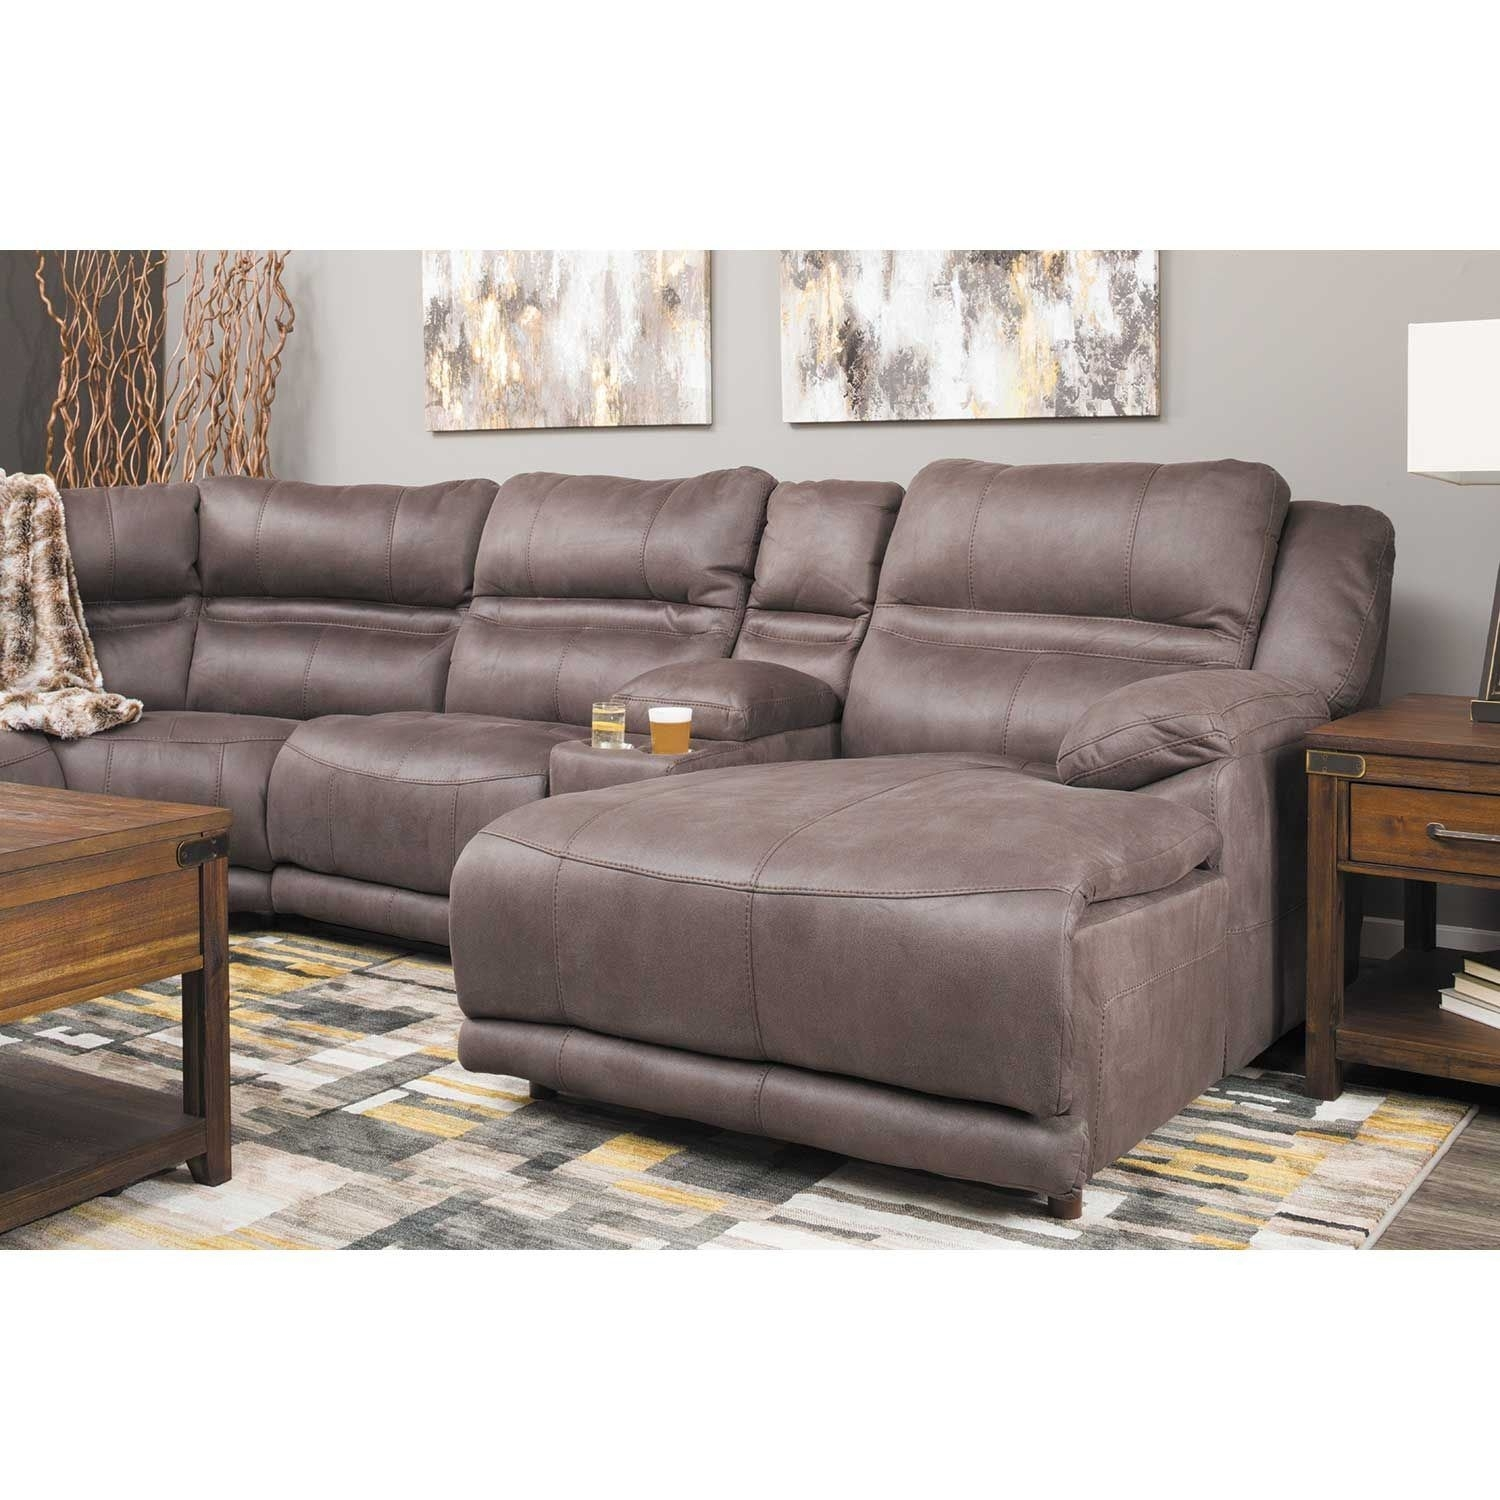 Braxton 6 Piece Power Reclining Sectional With Adjustable Headrest Within Jackson 6 Piece Power Reclining Sectionals With Sleeper (View 7 of 25)